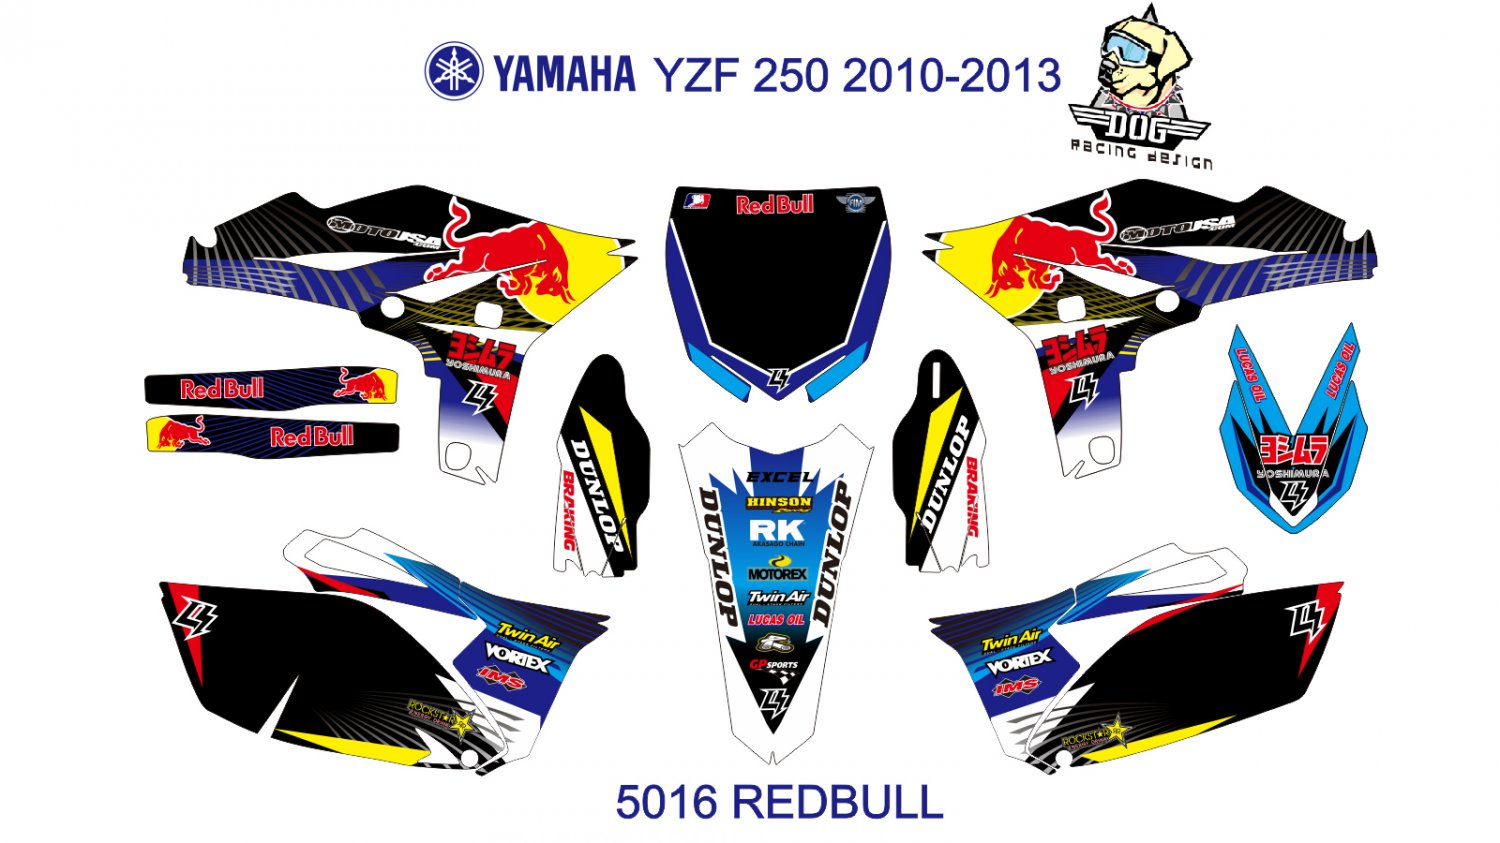 YAMAHA YZF 250 2010-2013 GRAPHIC DECAL KIT CODE.5016